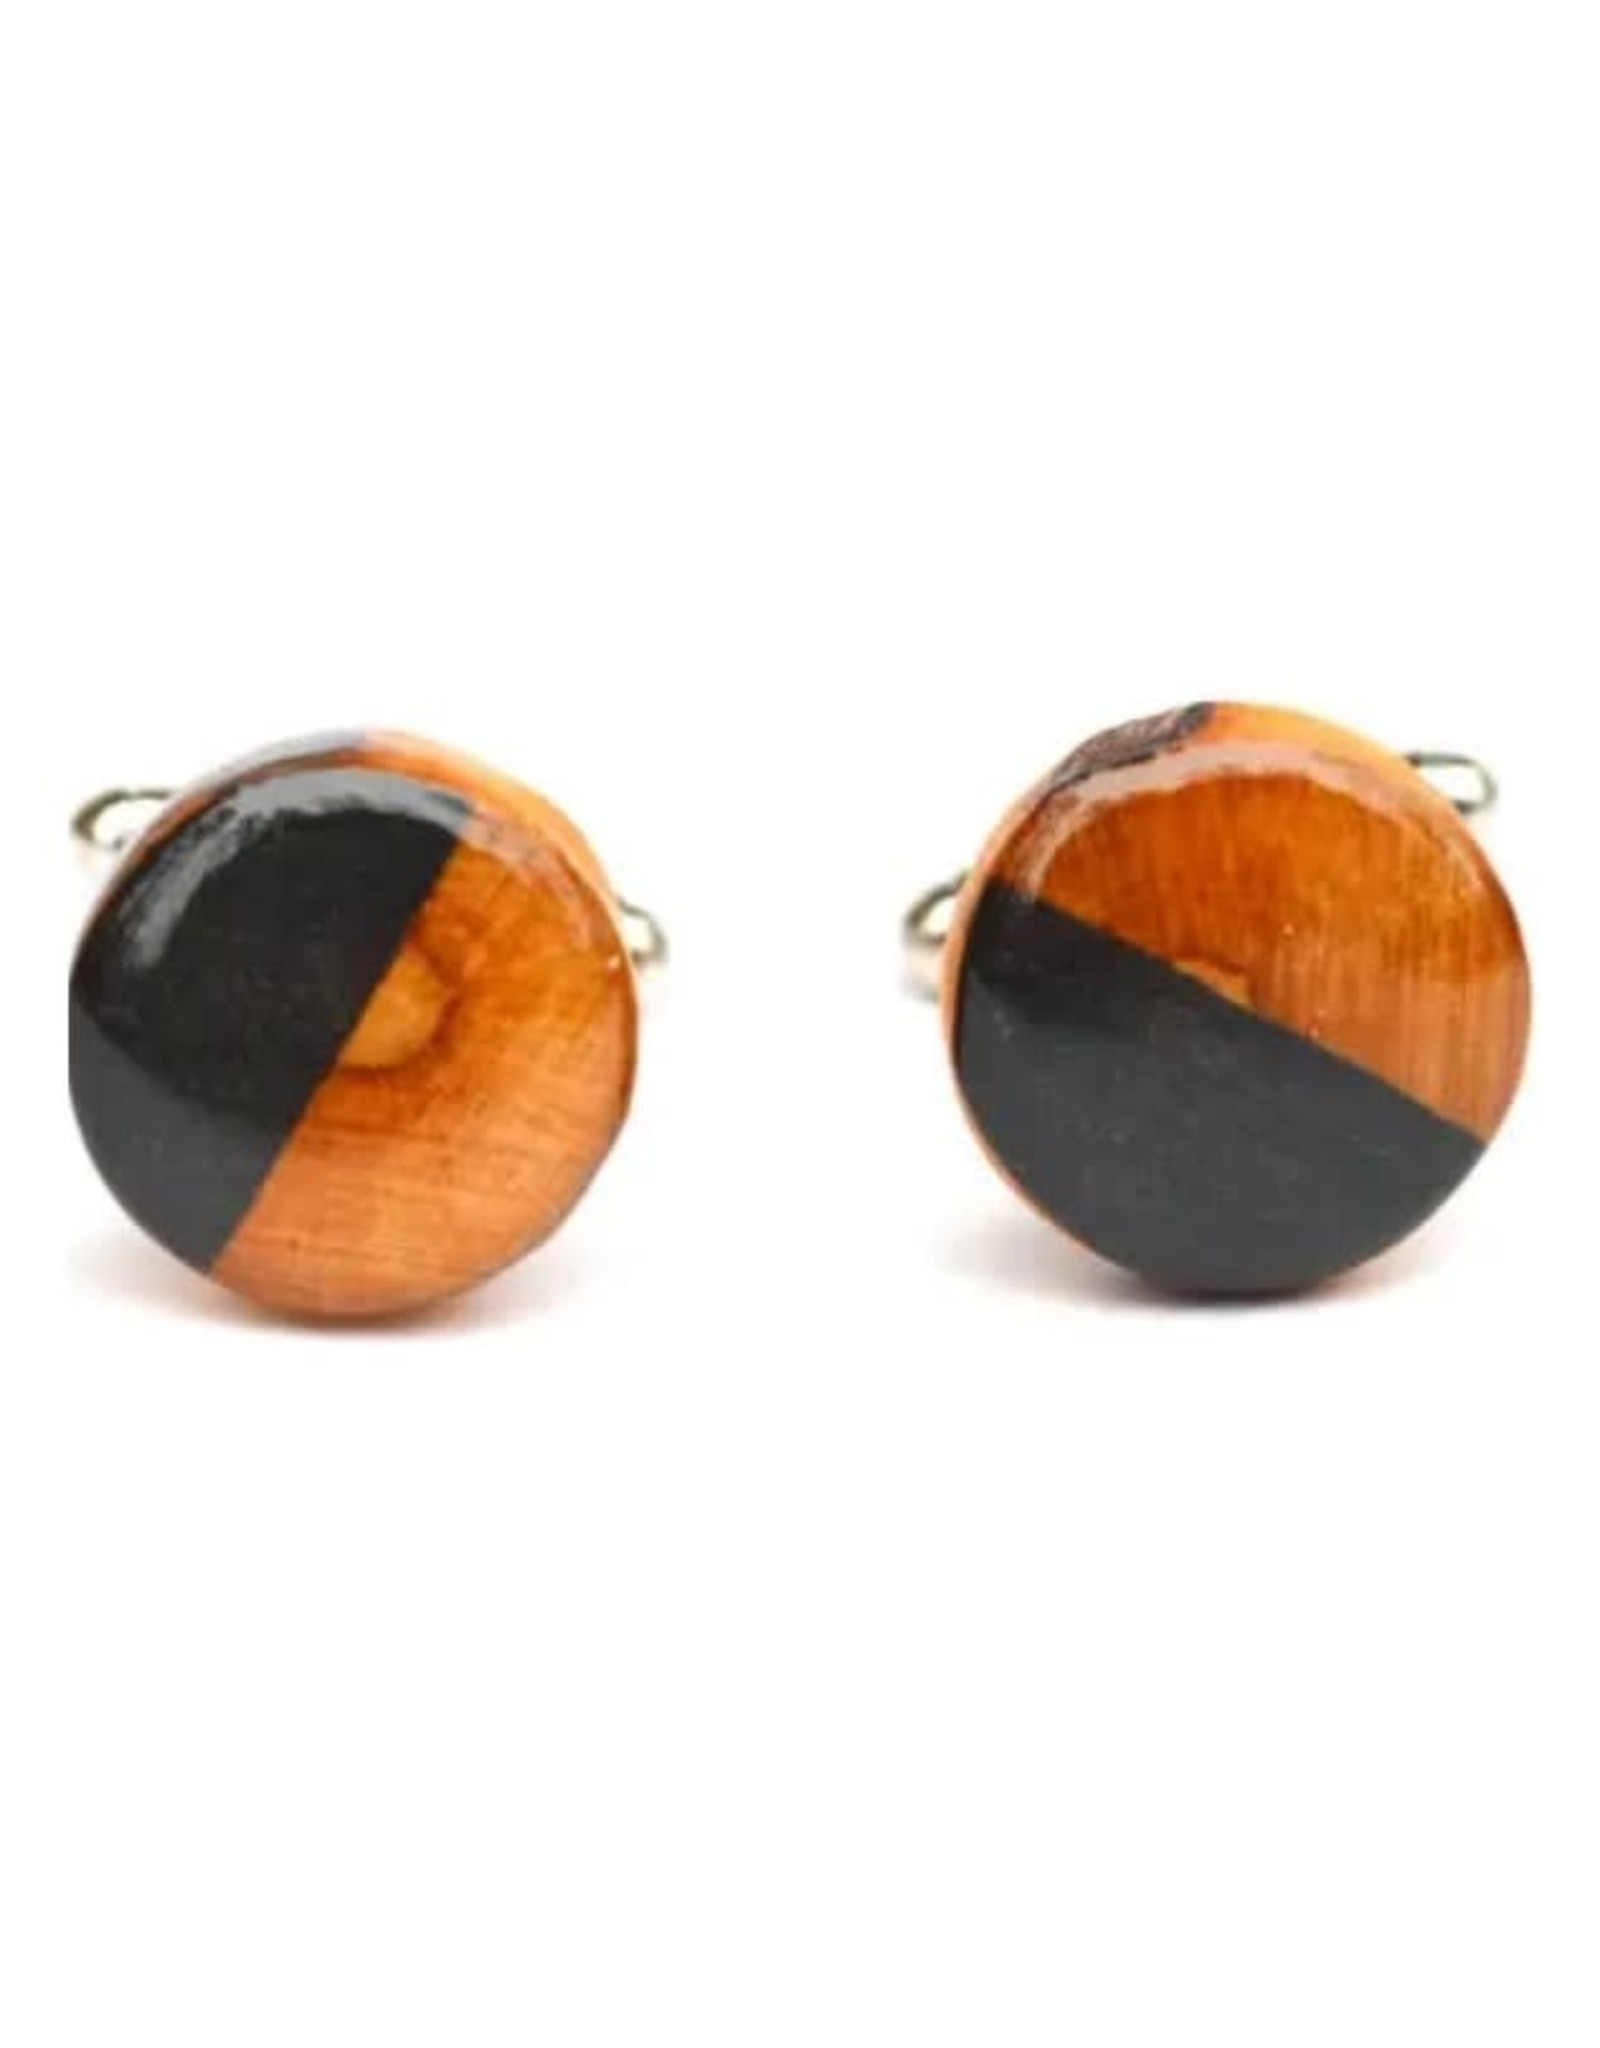 Starlight Woods Cufflinks - 2 Tone